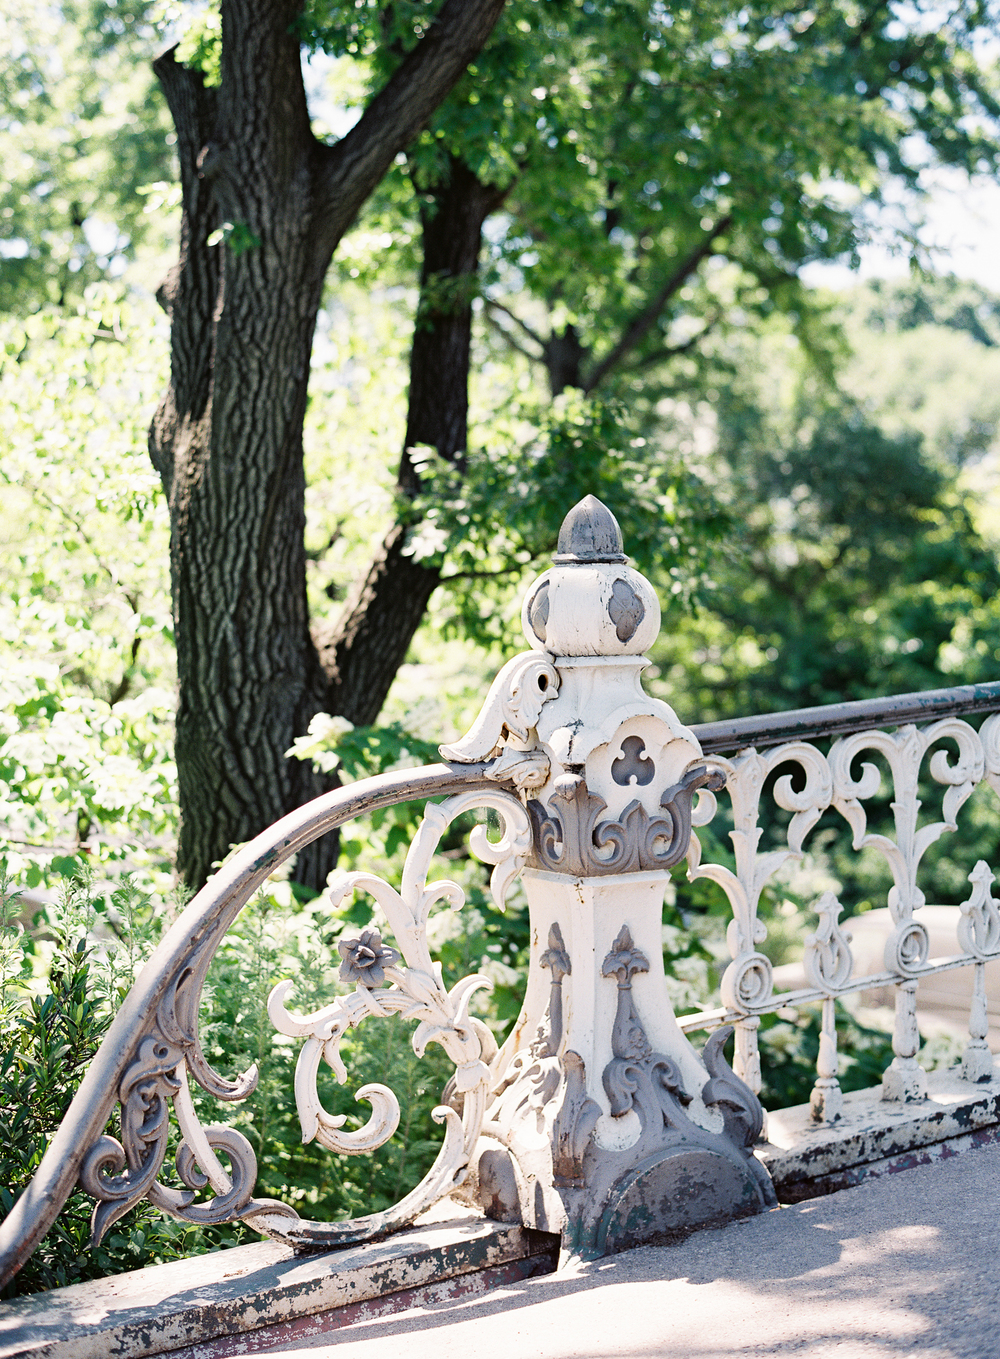 Meghan Mehan Photography - Fine Art Film Photography - California | San Francisco | Napa | Sonoma | New York City - 005.jpg